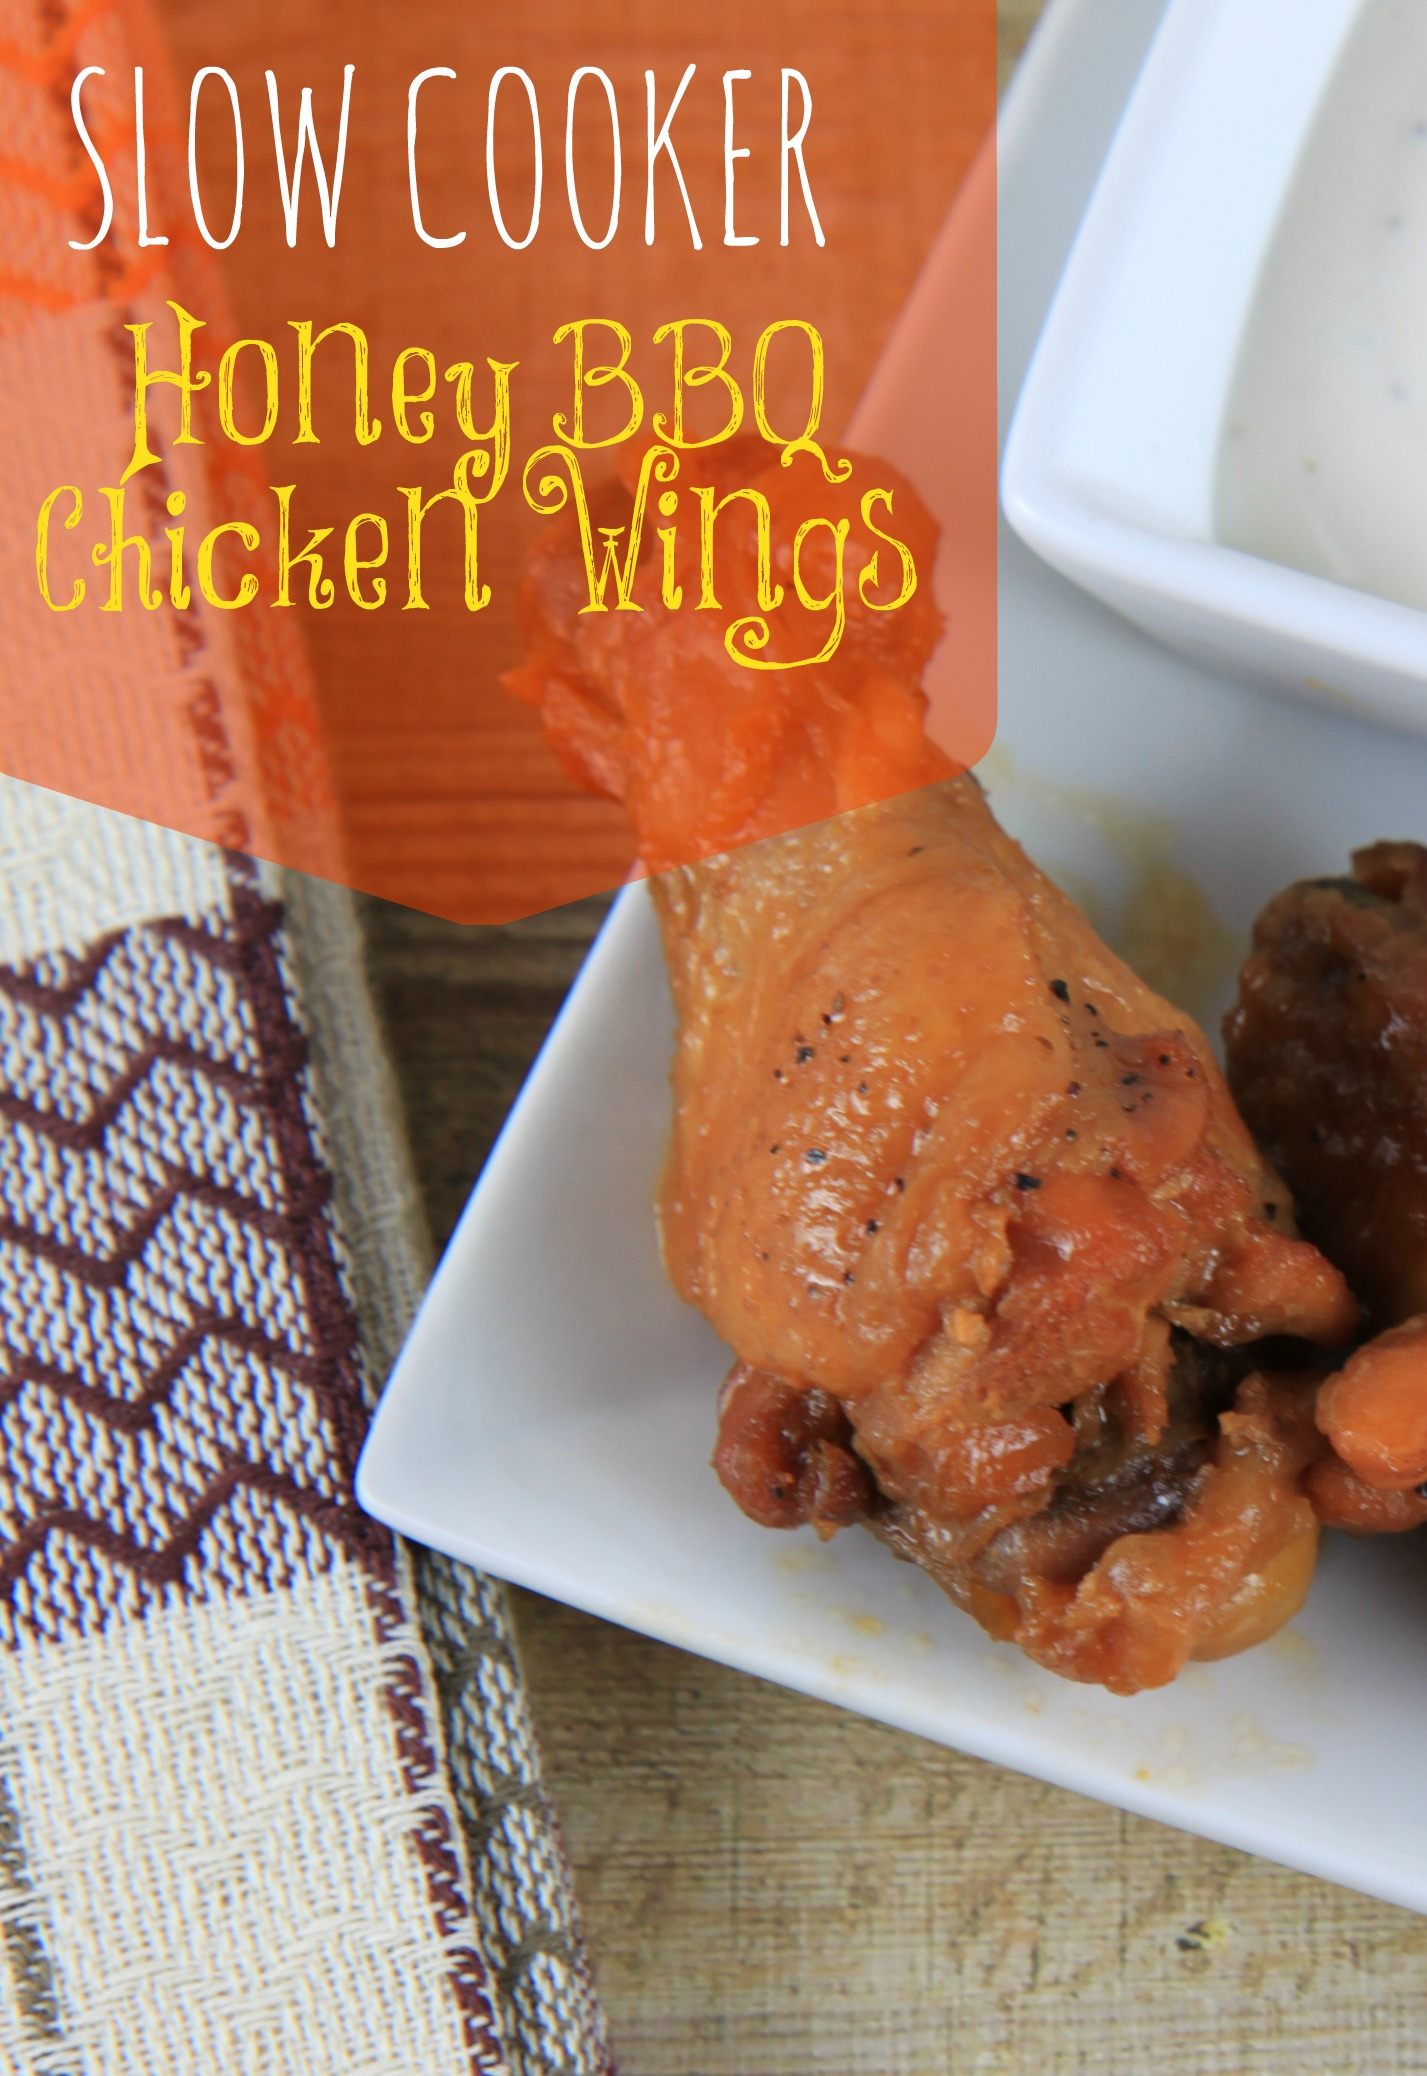 Easy Slow Cooker Honey BBQ Chicken Wings